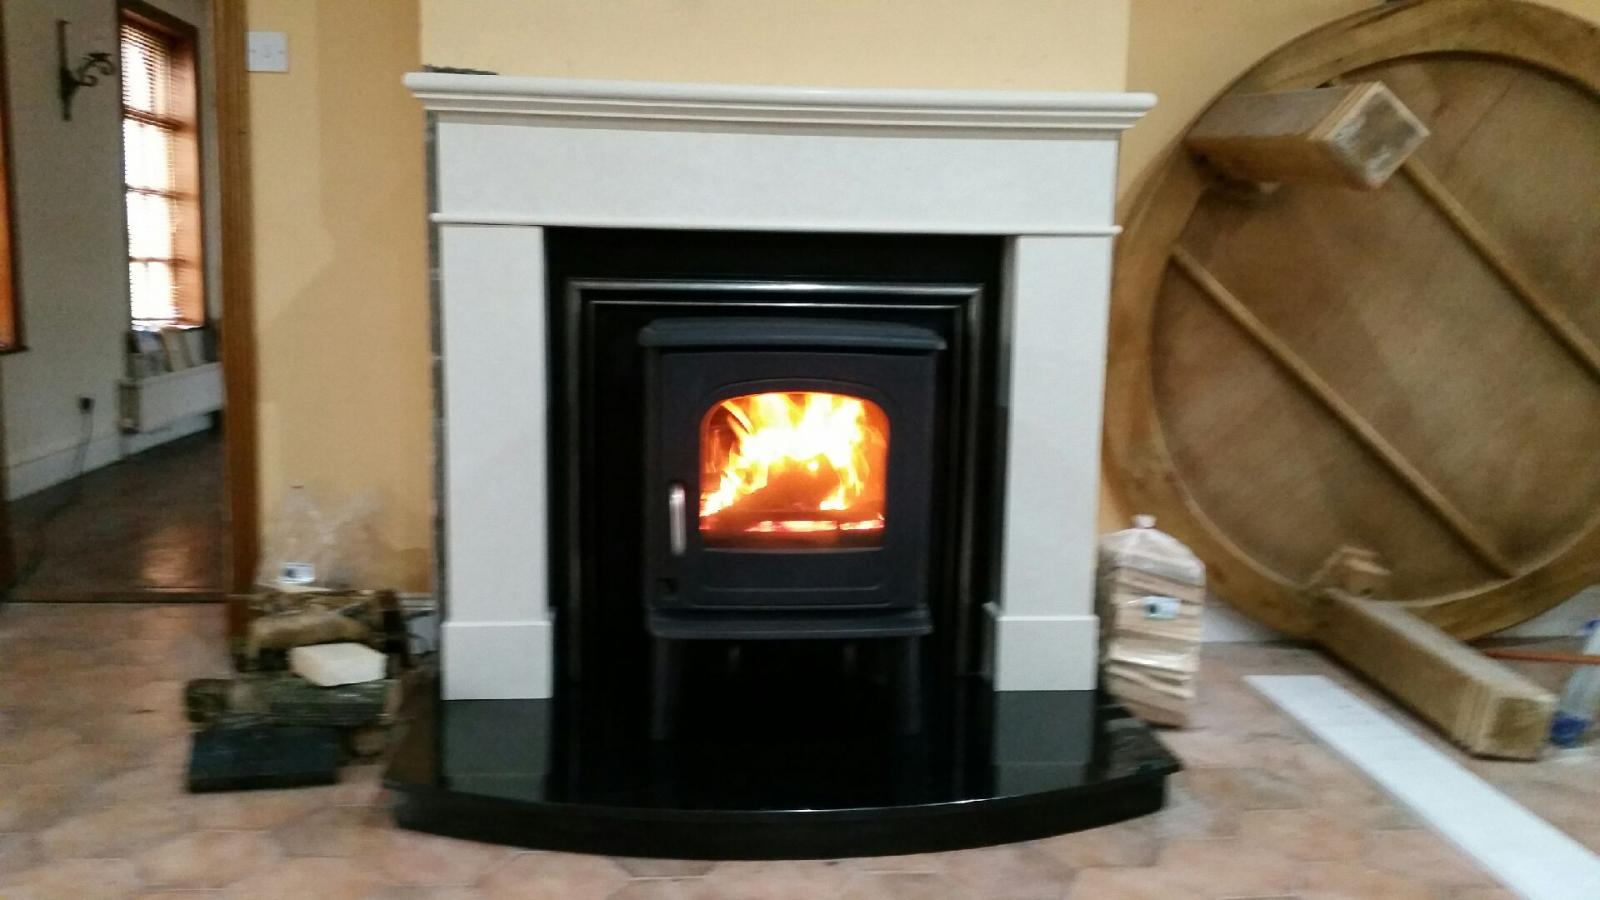 Dru 55 8kw with ivory cream Kos surround and curved granite hearth